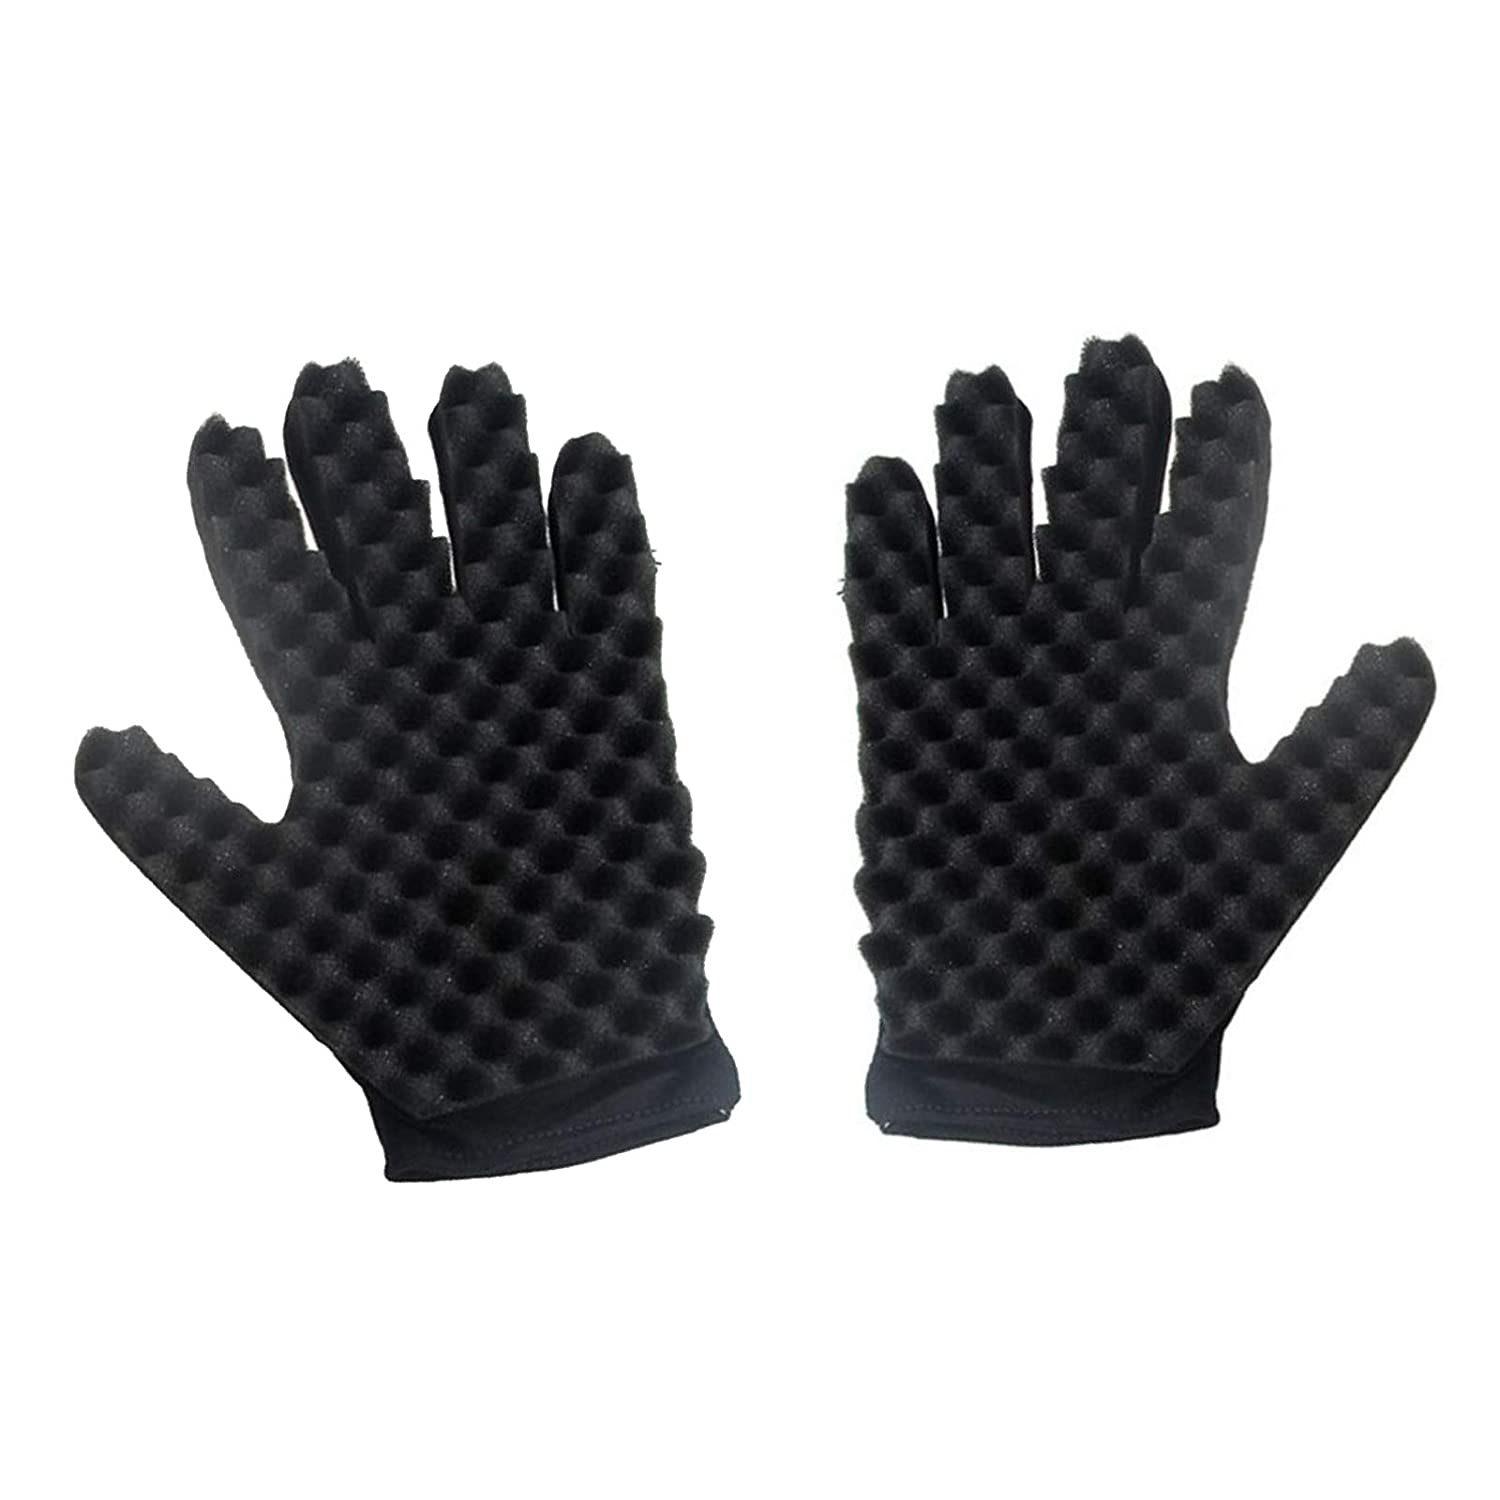 Magic Curly Sponge 2021 new Gloves Airlxf Curl T Hair 2PCS Sales for sale